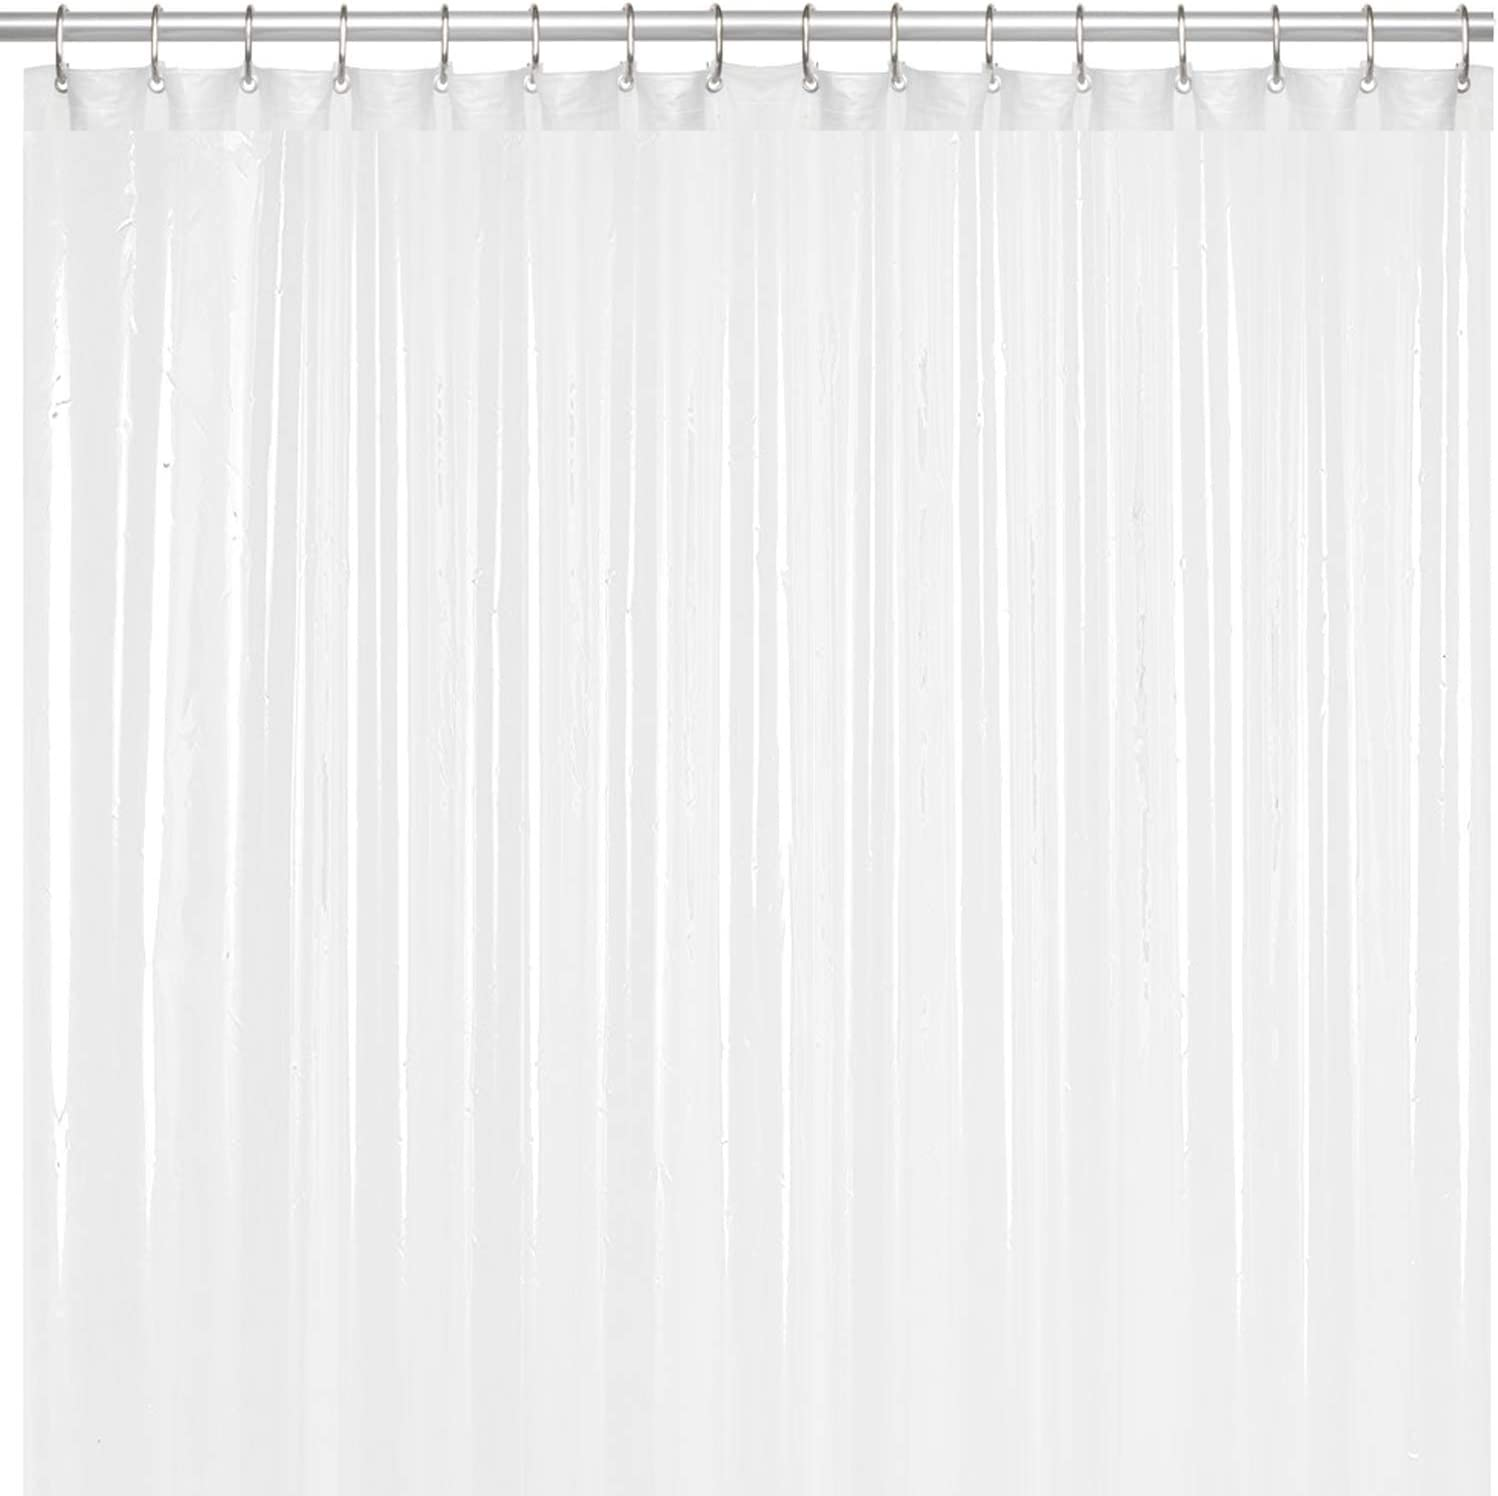 LiBa Mildew Resistant Anti-Microbial PEVA 8G Shower Curtain Liner (36x72, White)